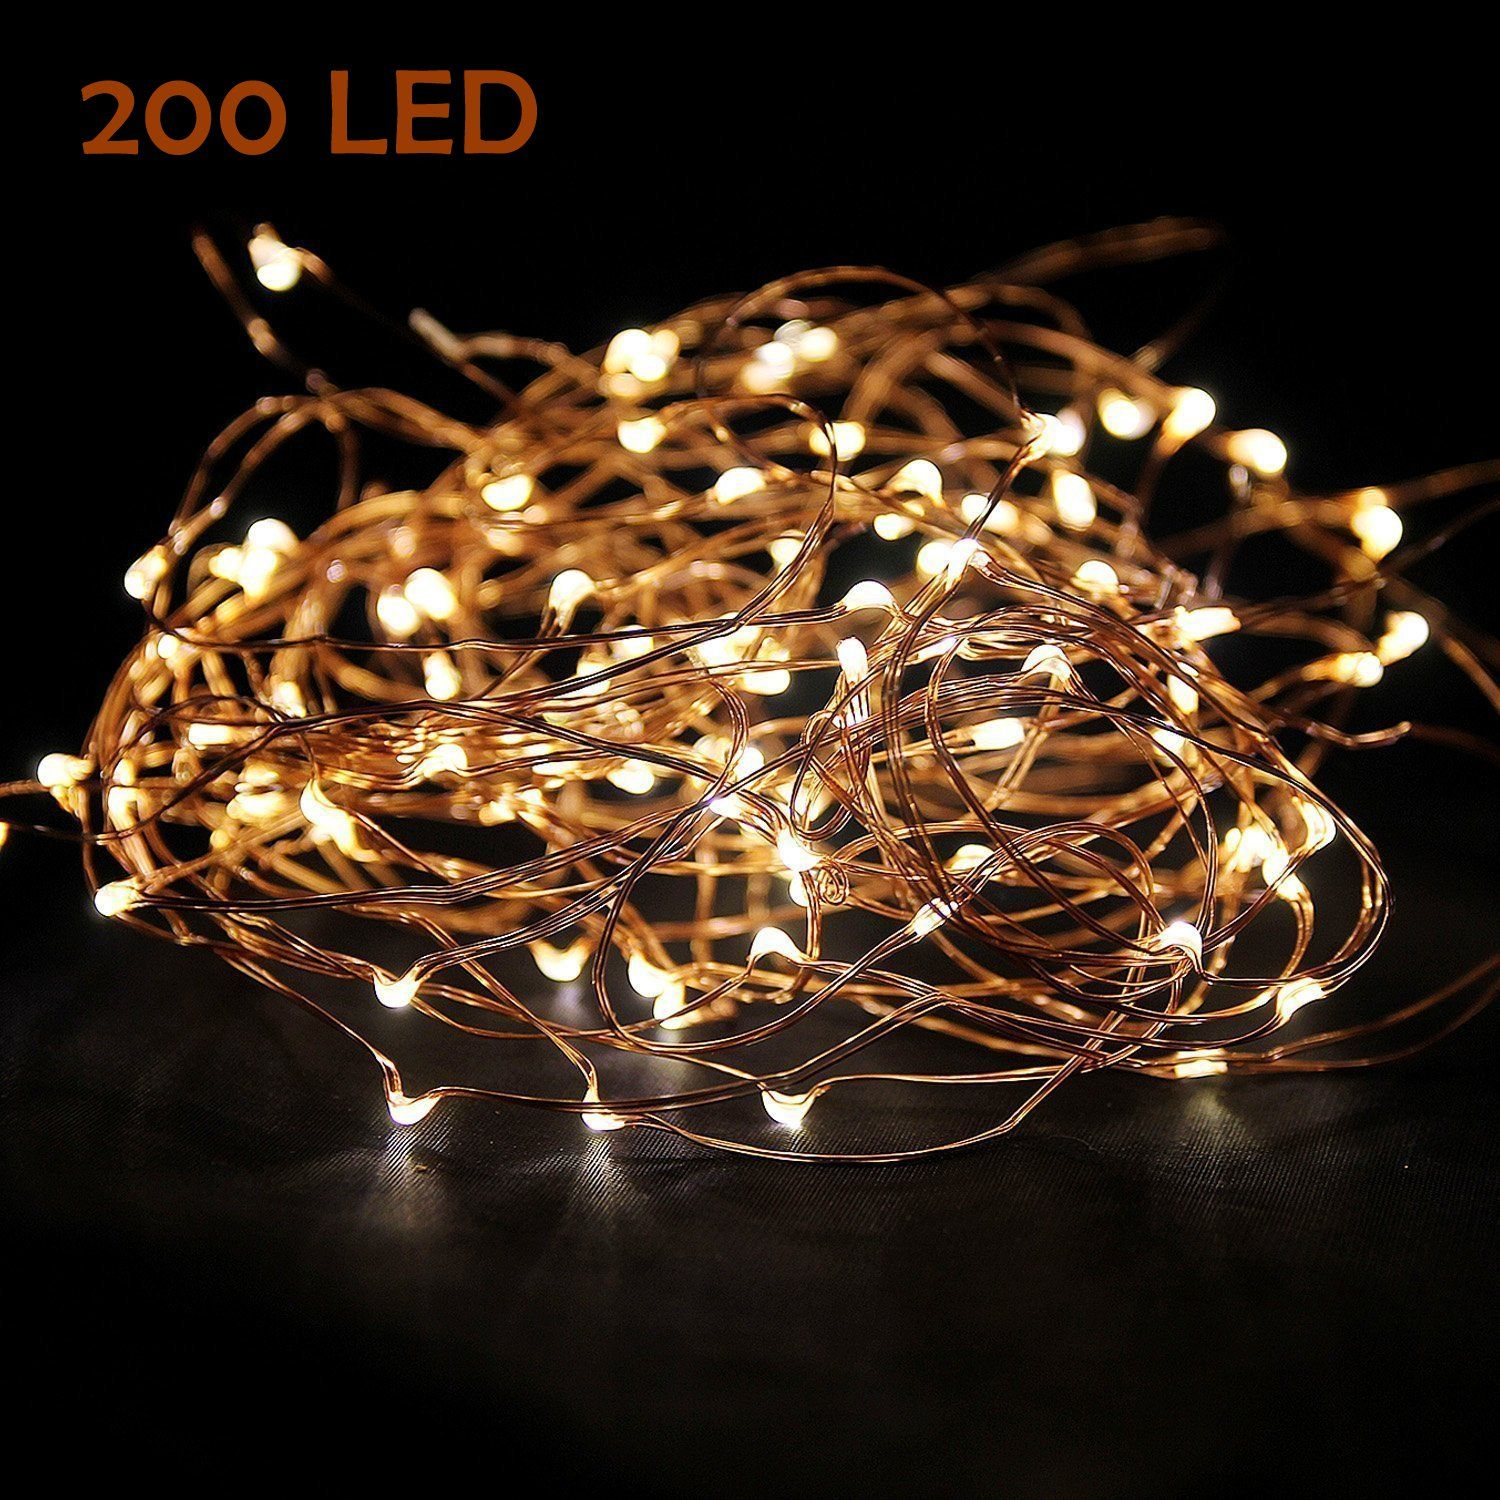 Amazon.com: Starry String Lights Warm White Color LED's on a Flexible Copper Wire - LED String Light with 120 Individually Mounted LED's, 20ft: Home Improvement